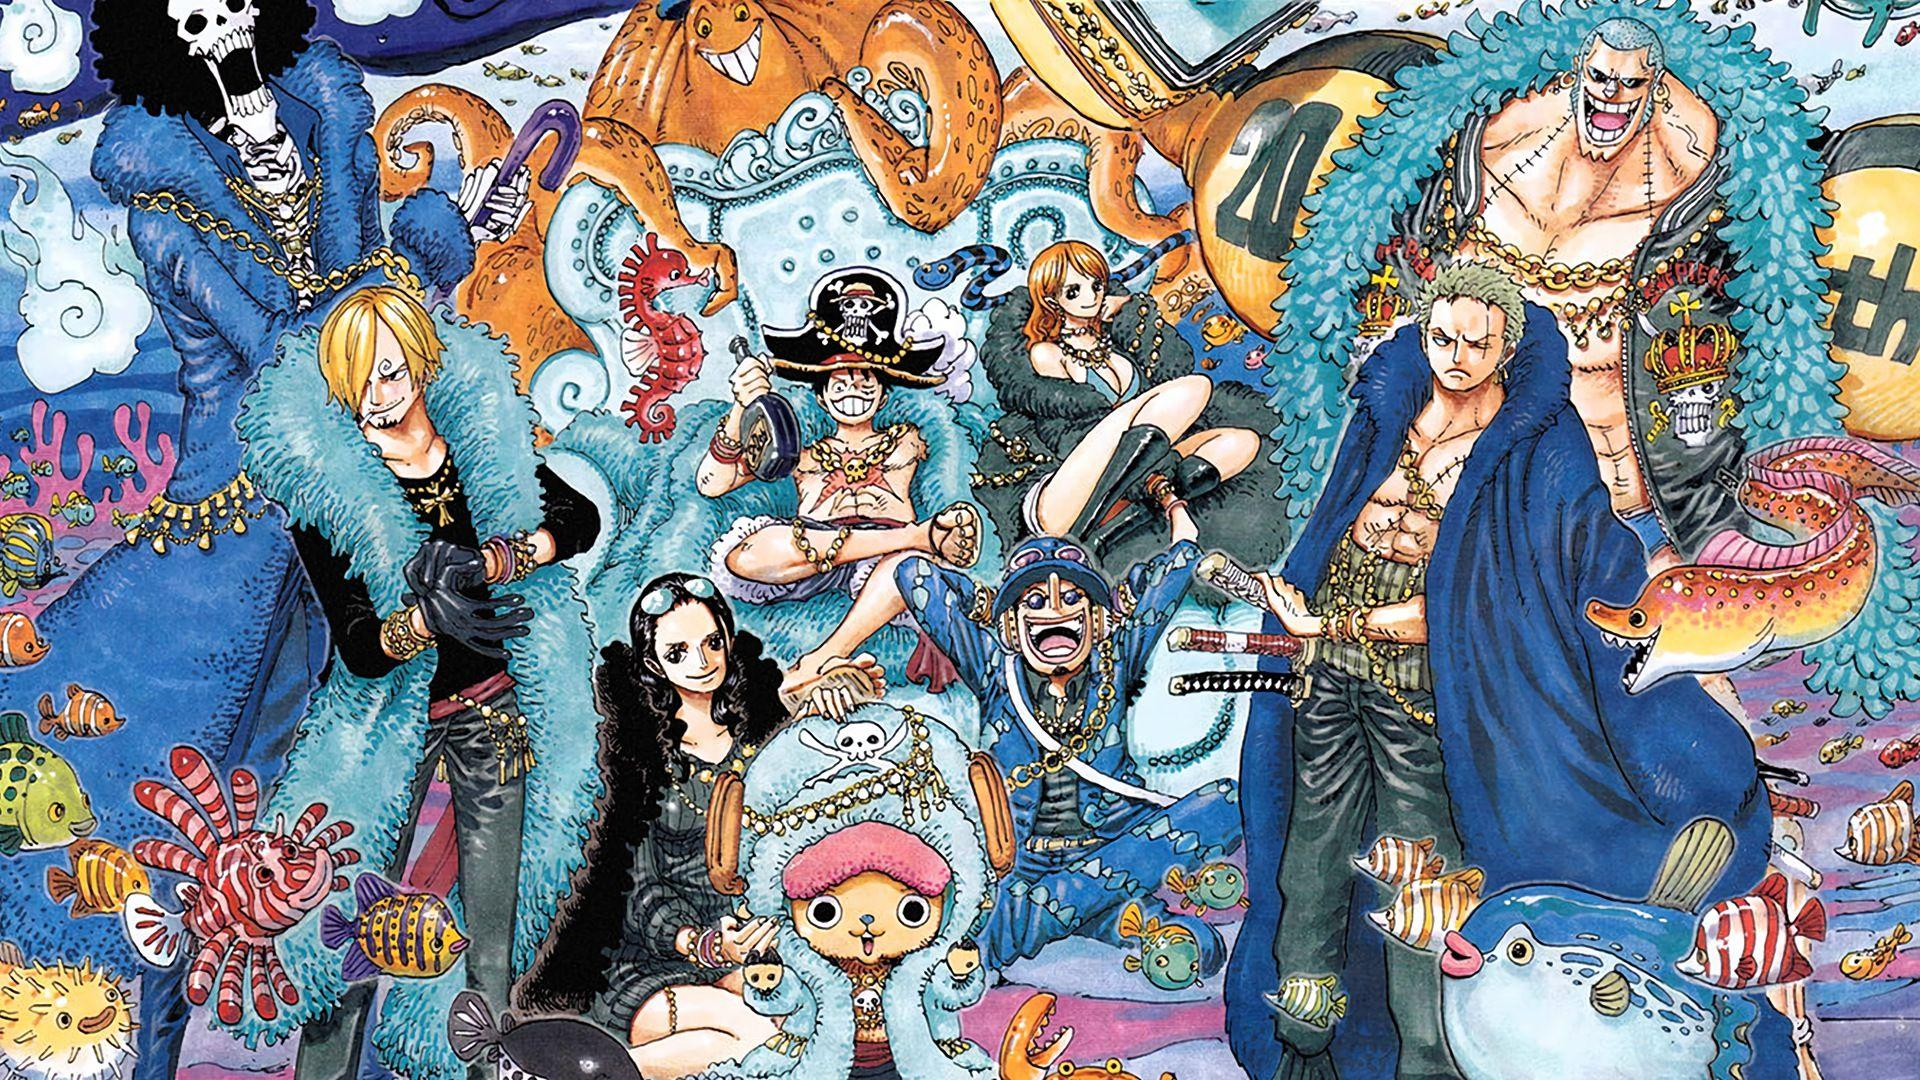 Nico Robin One Piece Wallpapers - Wallpaper Cave